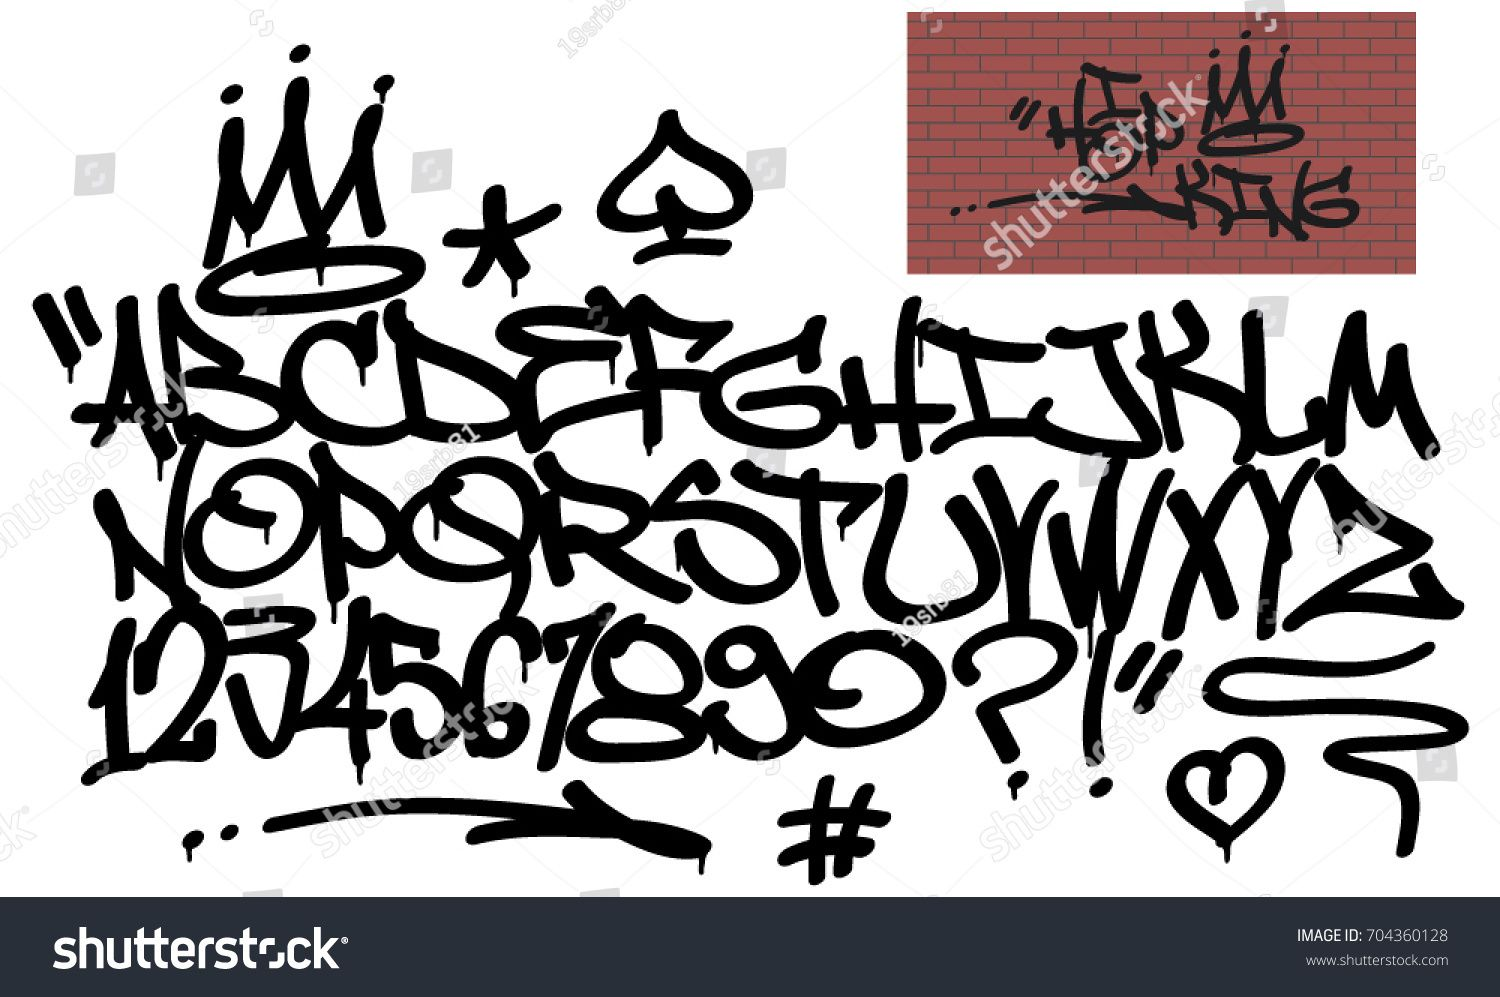 Spray graffiti tagging font and signs crown heart star arrow dot quotation mark number spade hip hop king quote on brick wall background